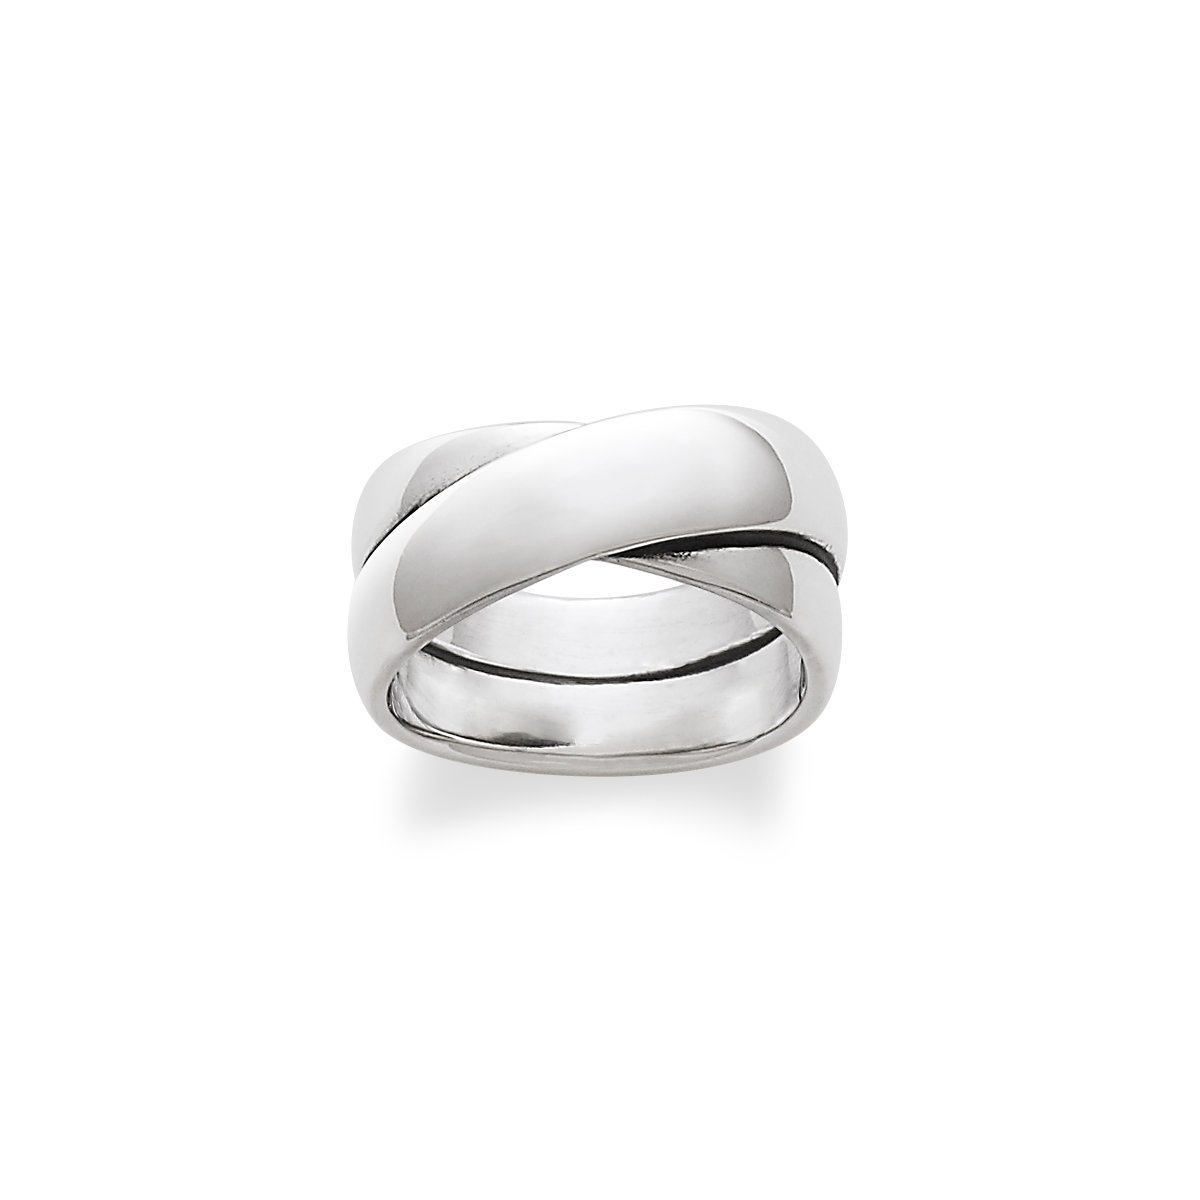 sterling rings tinnivi endless heart silver love couples